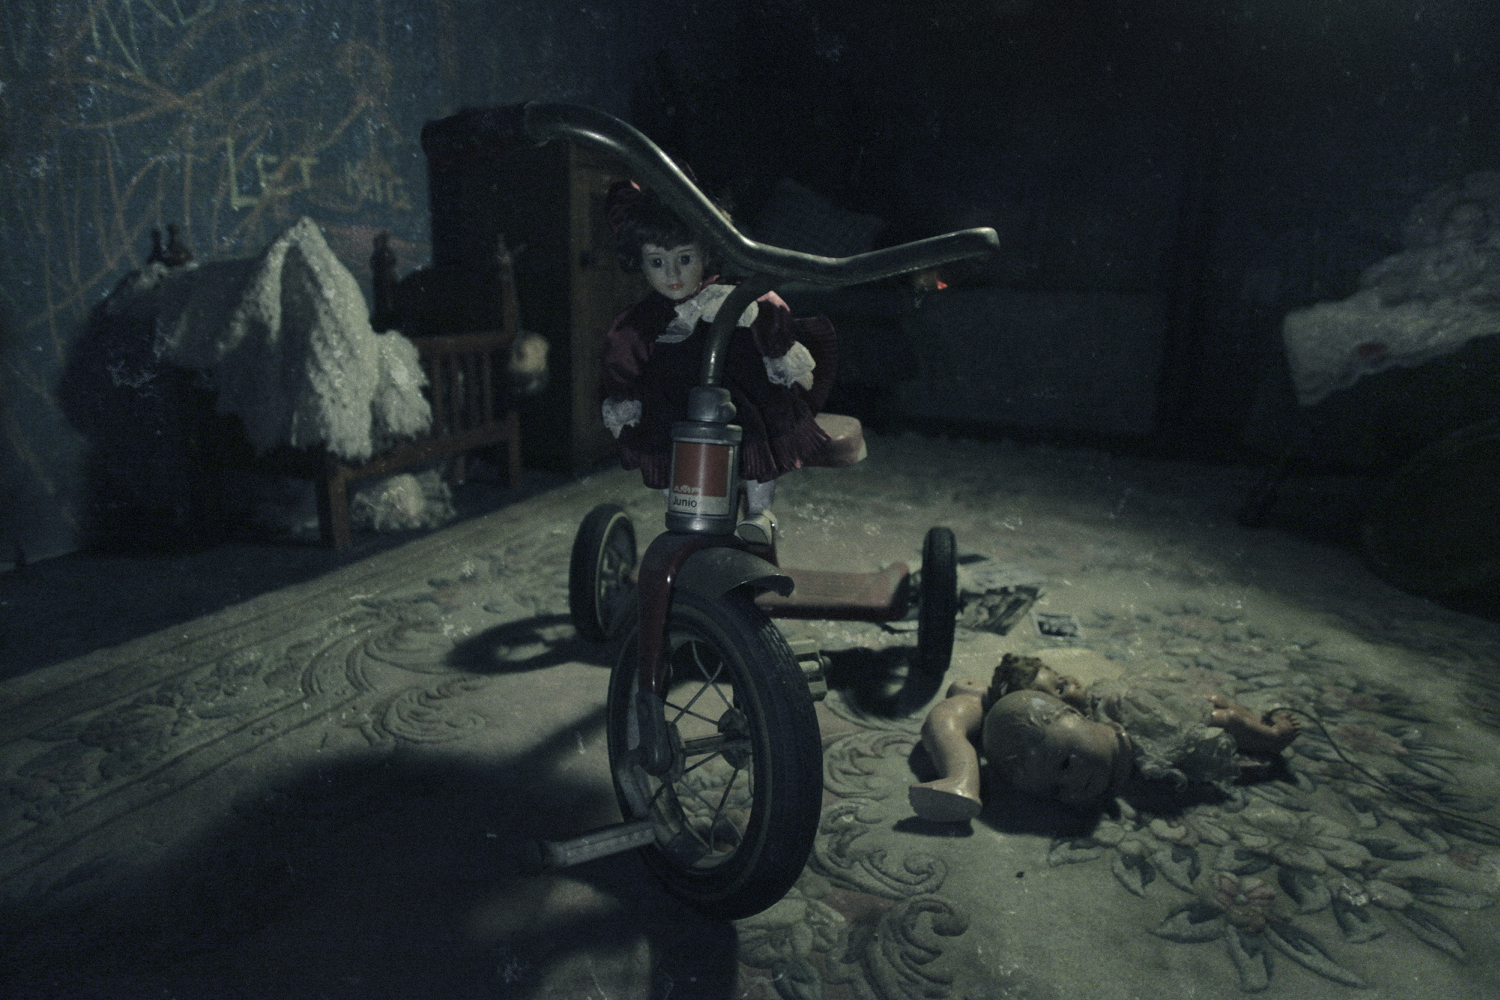 Inside the Daycare escape room with a tricycle